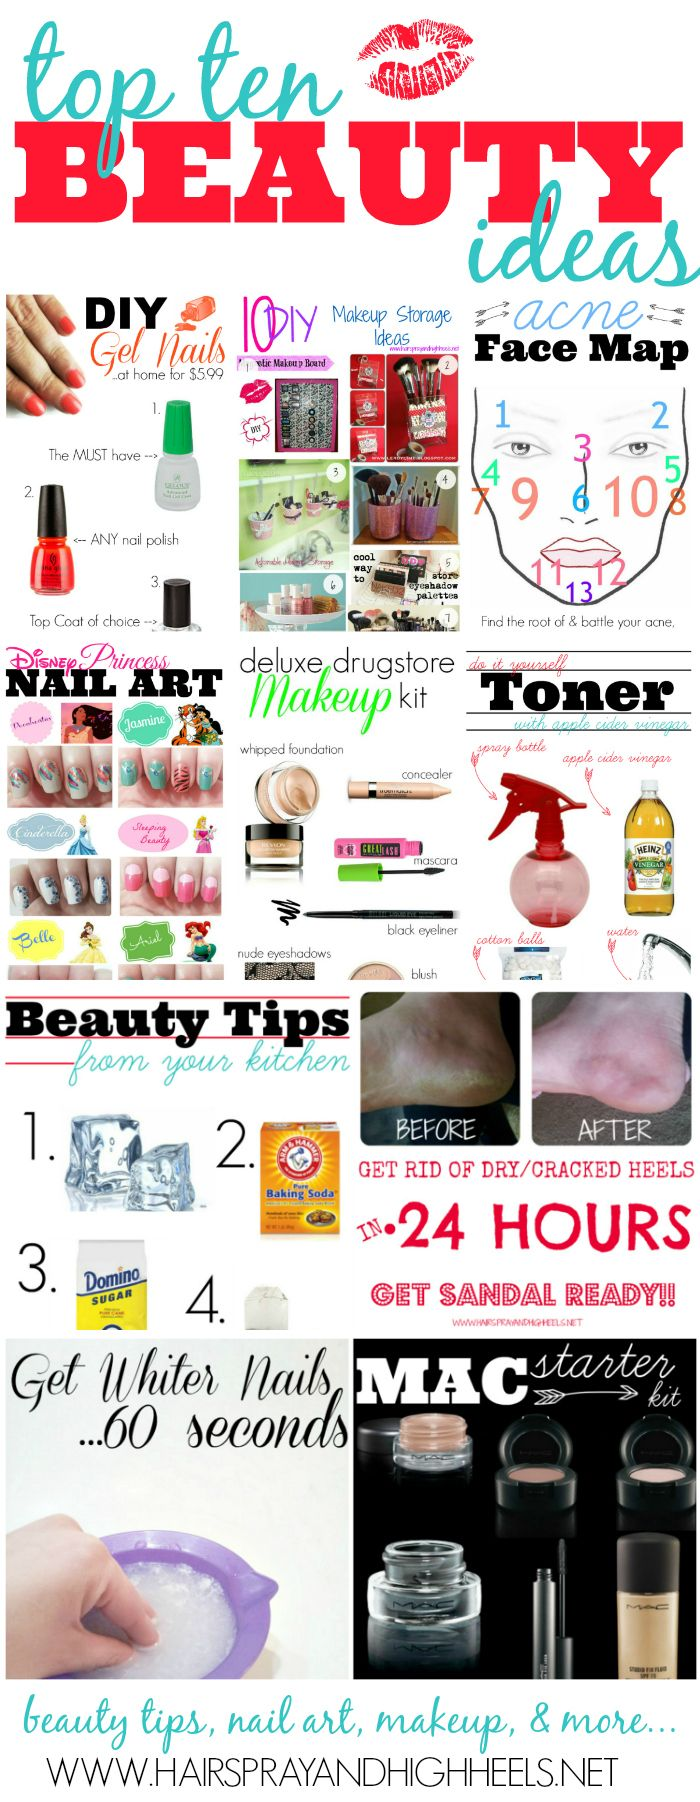 Top Ten Beauty Ideas Of 2013 – Hairspray and Highheels